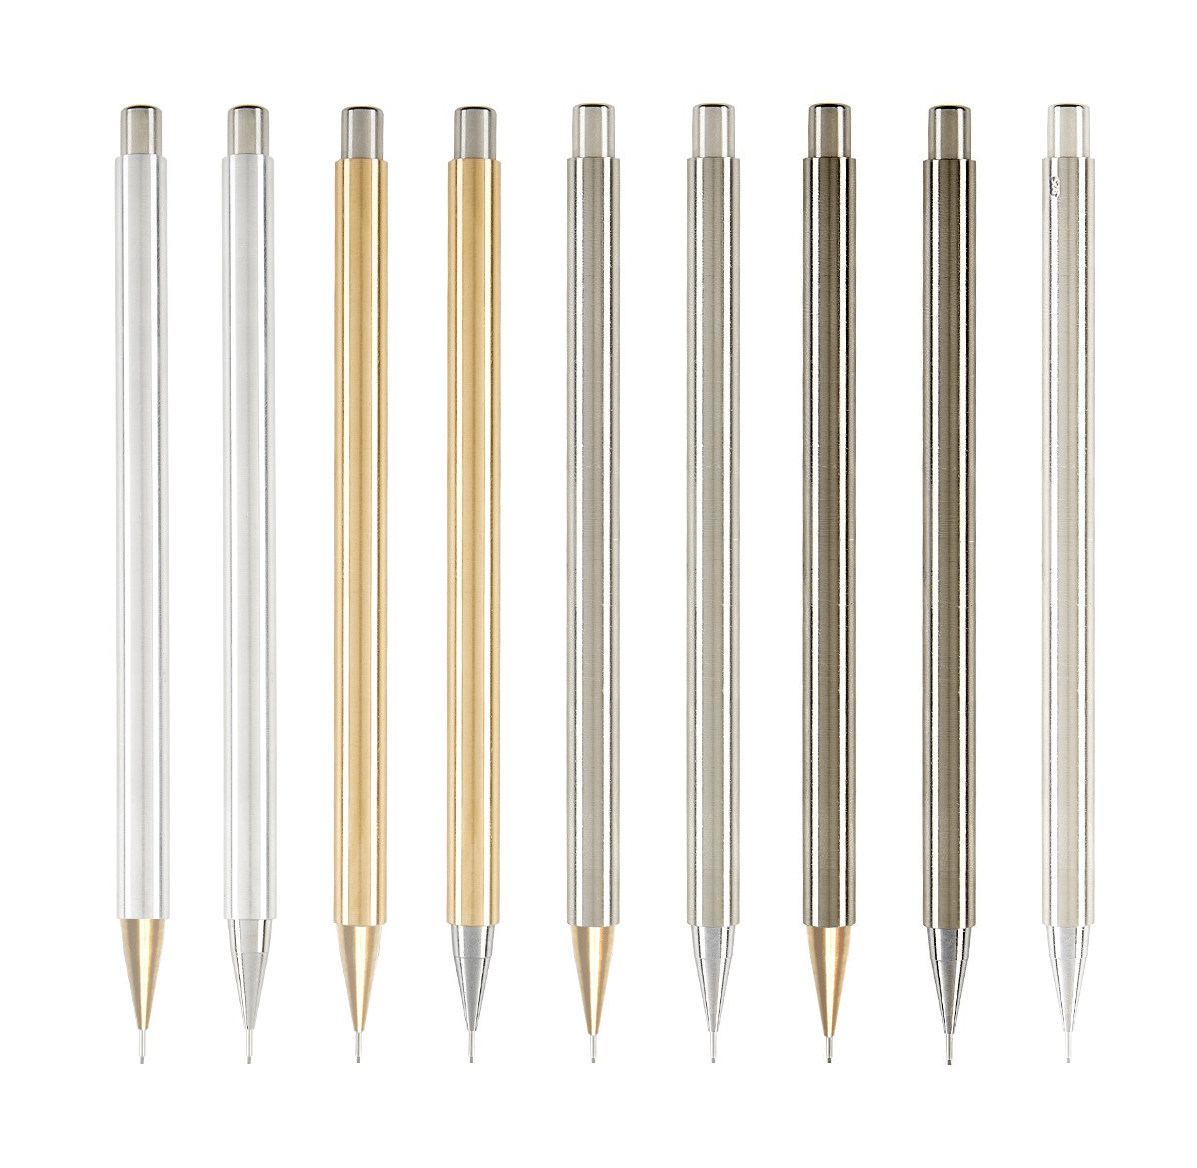 the pencil Pencil in definition, a slender tube of wood, metal, plastic, etc, containing a core or strip of graphite, a solid coloring material, or the like, used for writing or drawing.